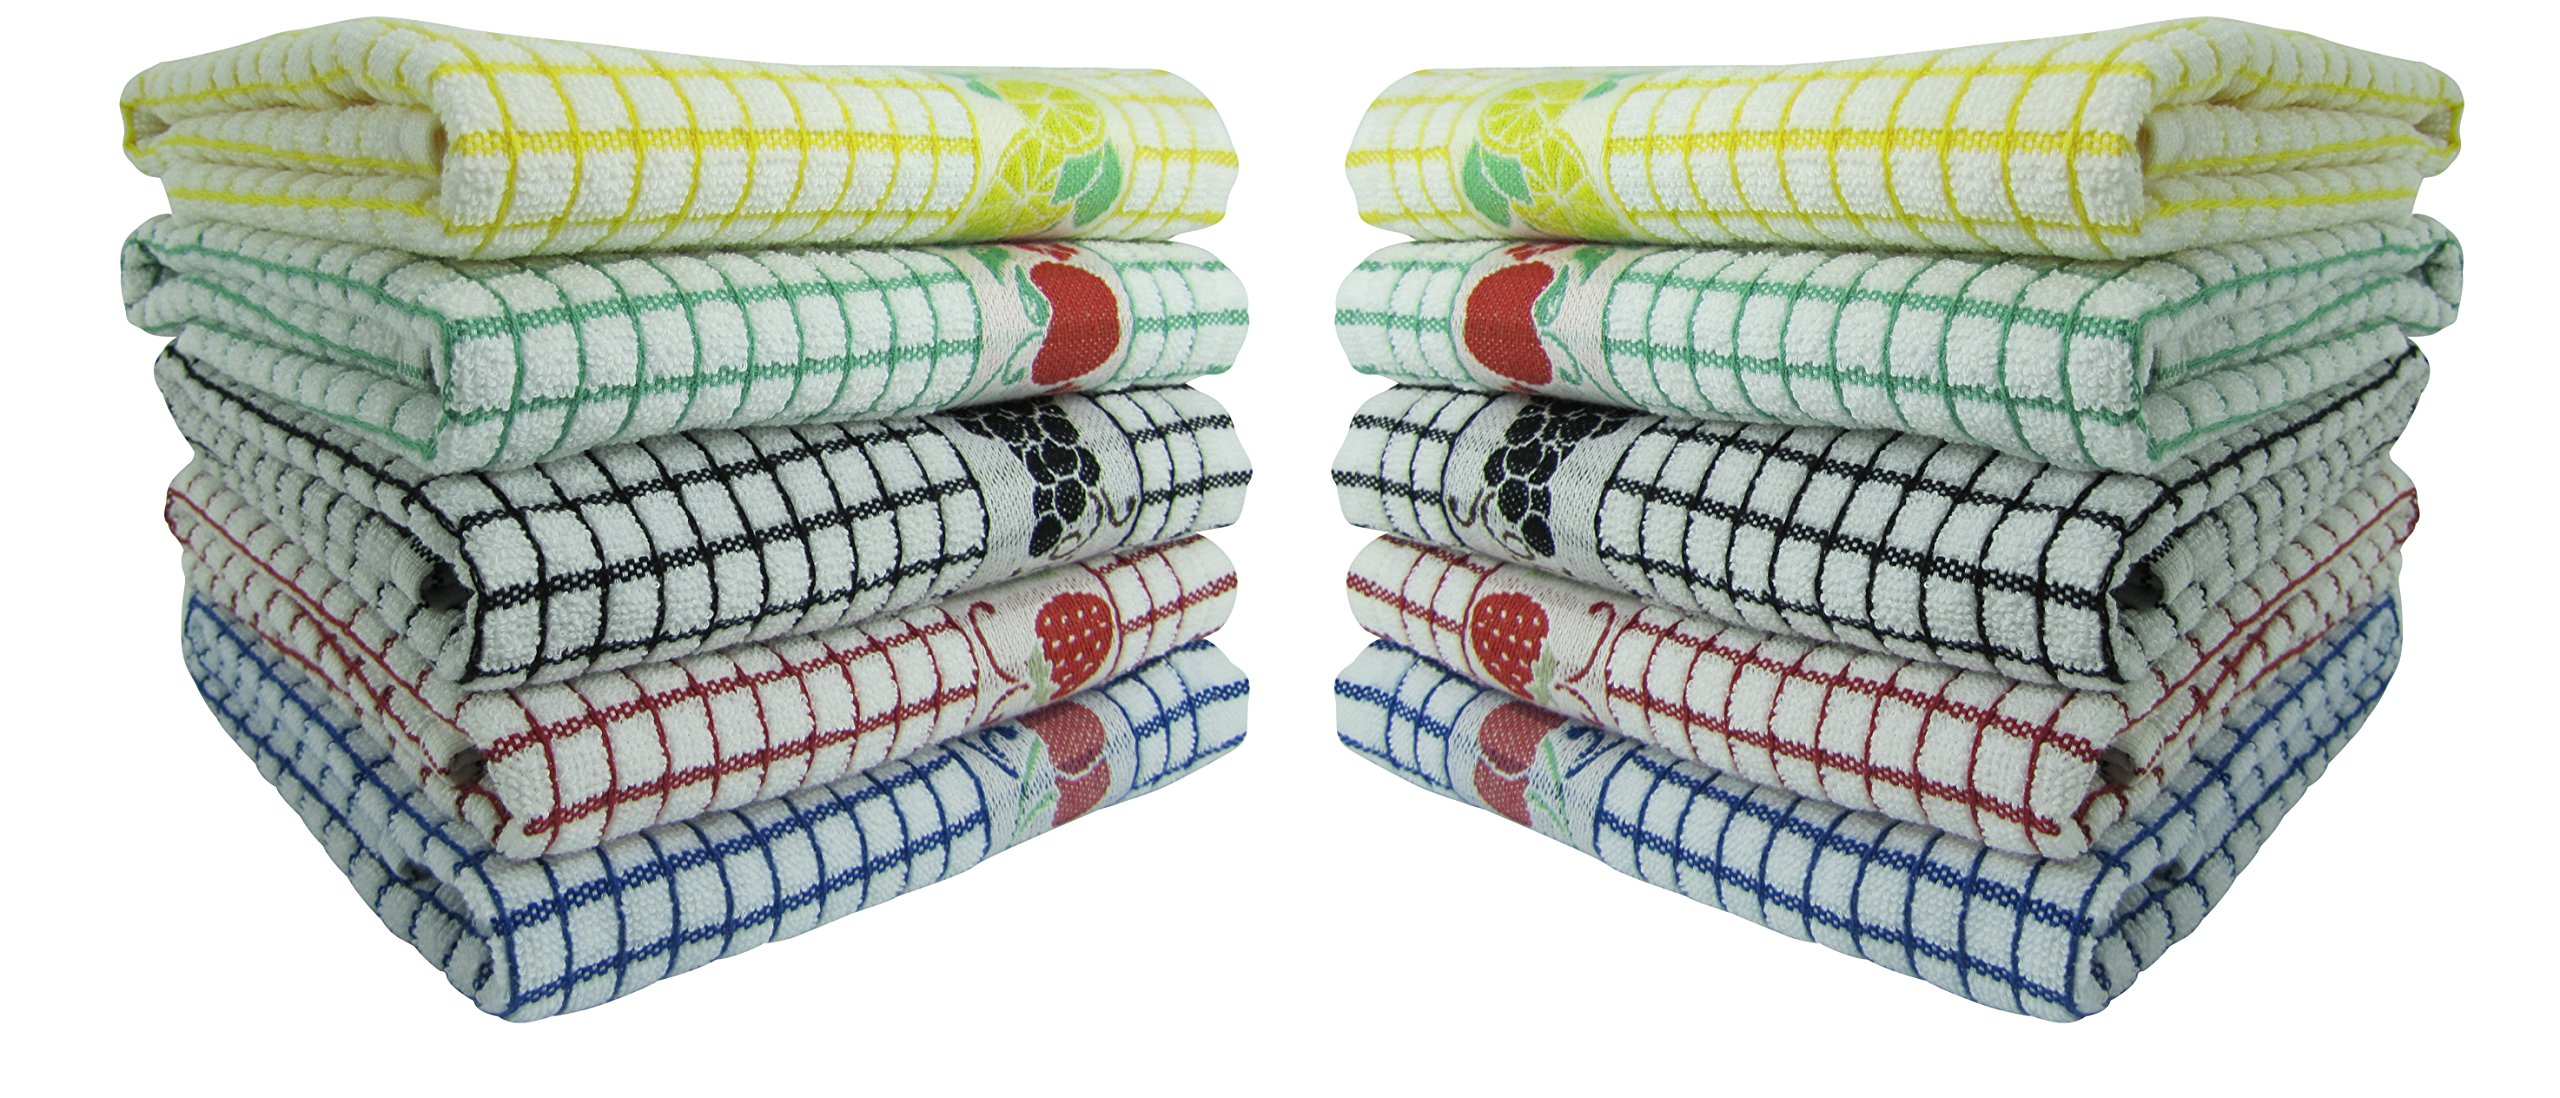 Fecido Fruity Kitchen Collection Complete Set Dish Towels - Heavy Duty - Super Absorbent - 100% Cotton - The Best European Tea Towels With Fruit Design, 10 Pack by Fecido